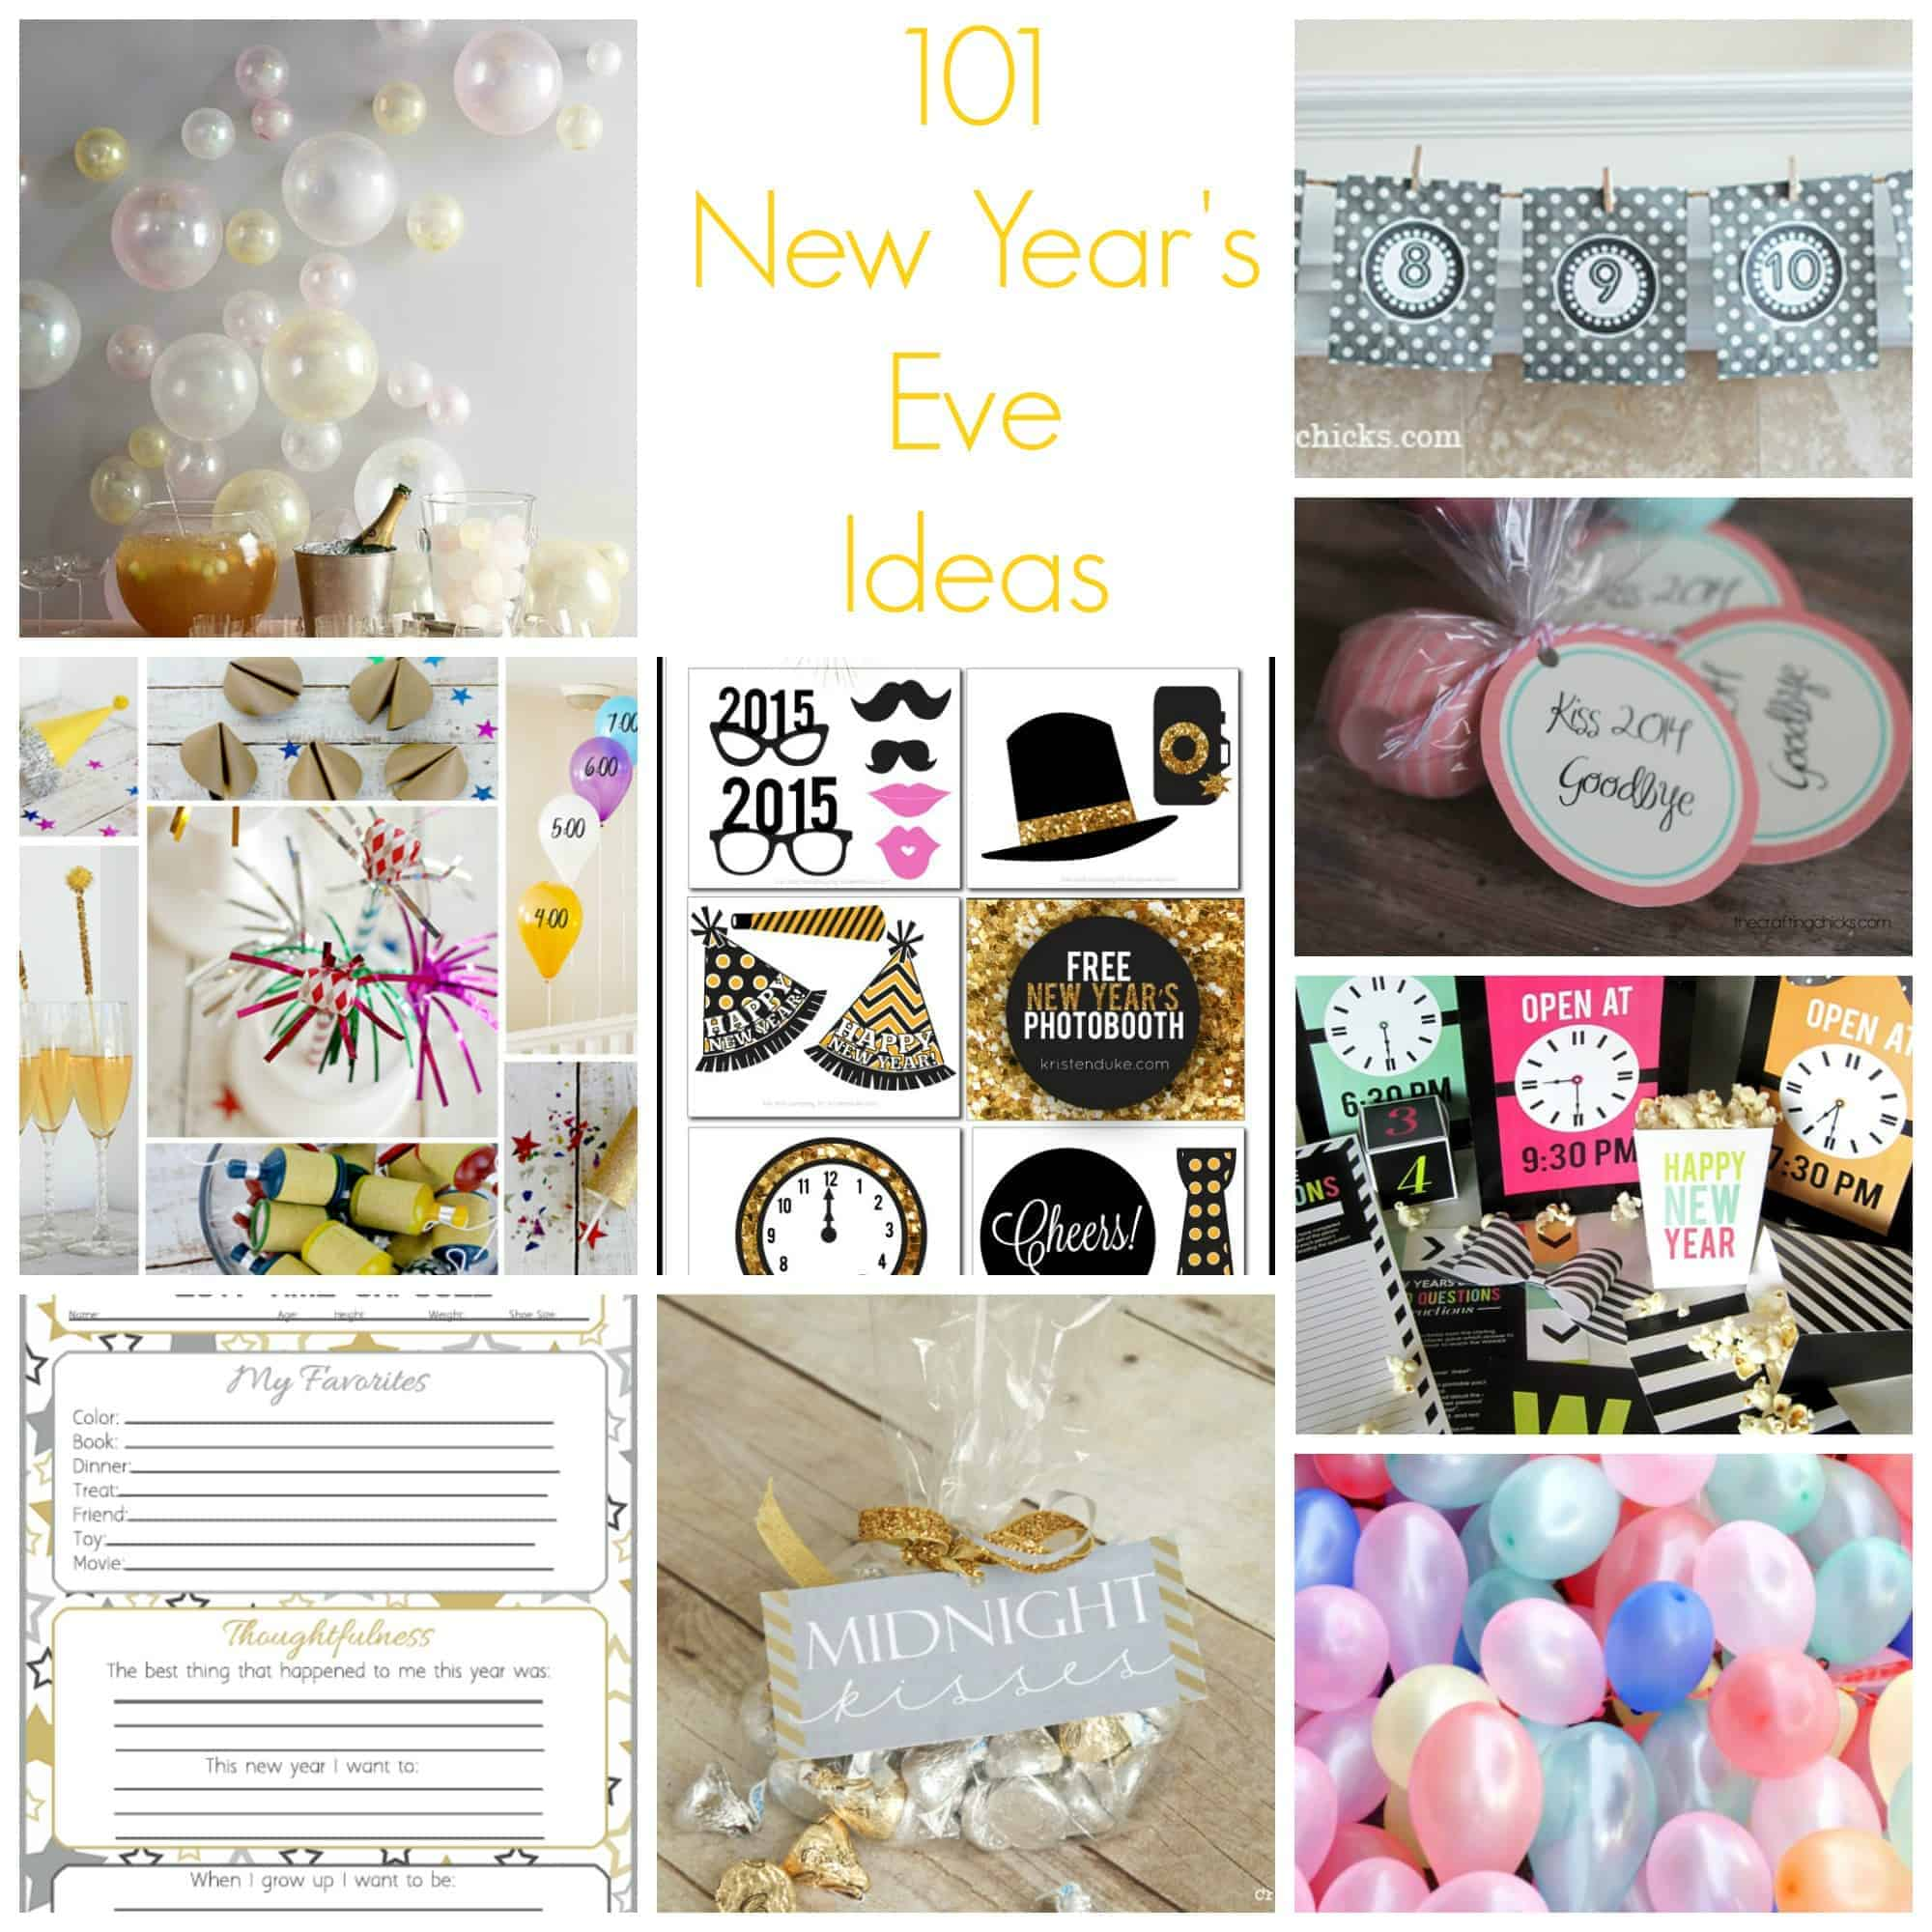 101 New Year's Eve Ideas